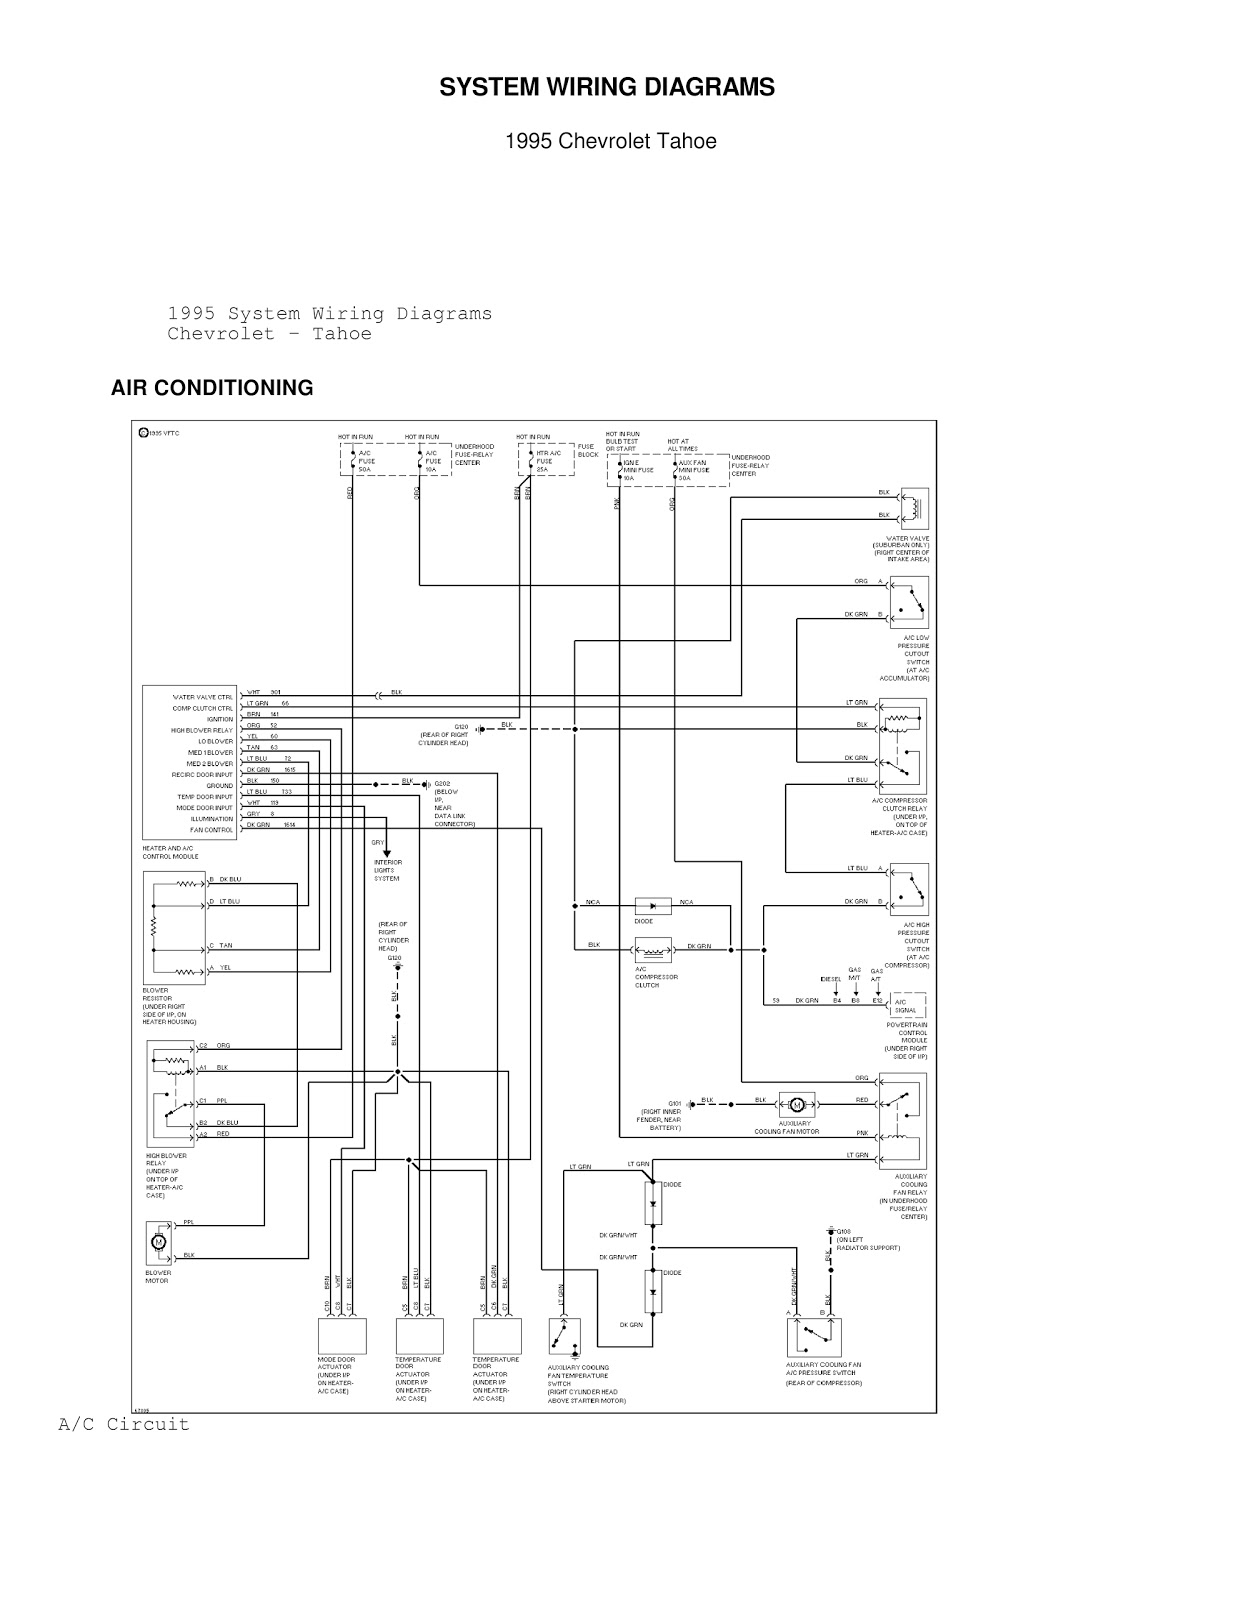 Chevrolet Tahoe System Wiring Diagrams Air Conditioning Circuits